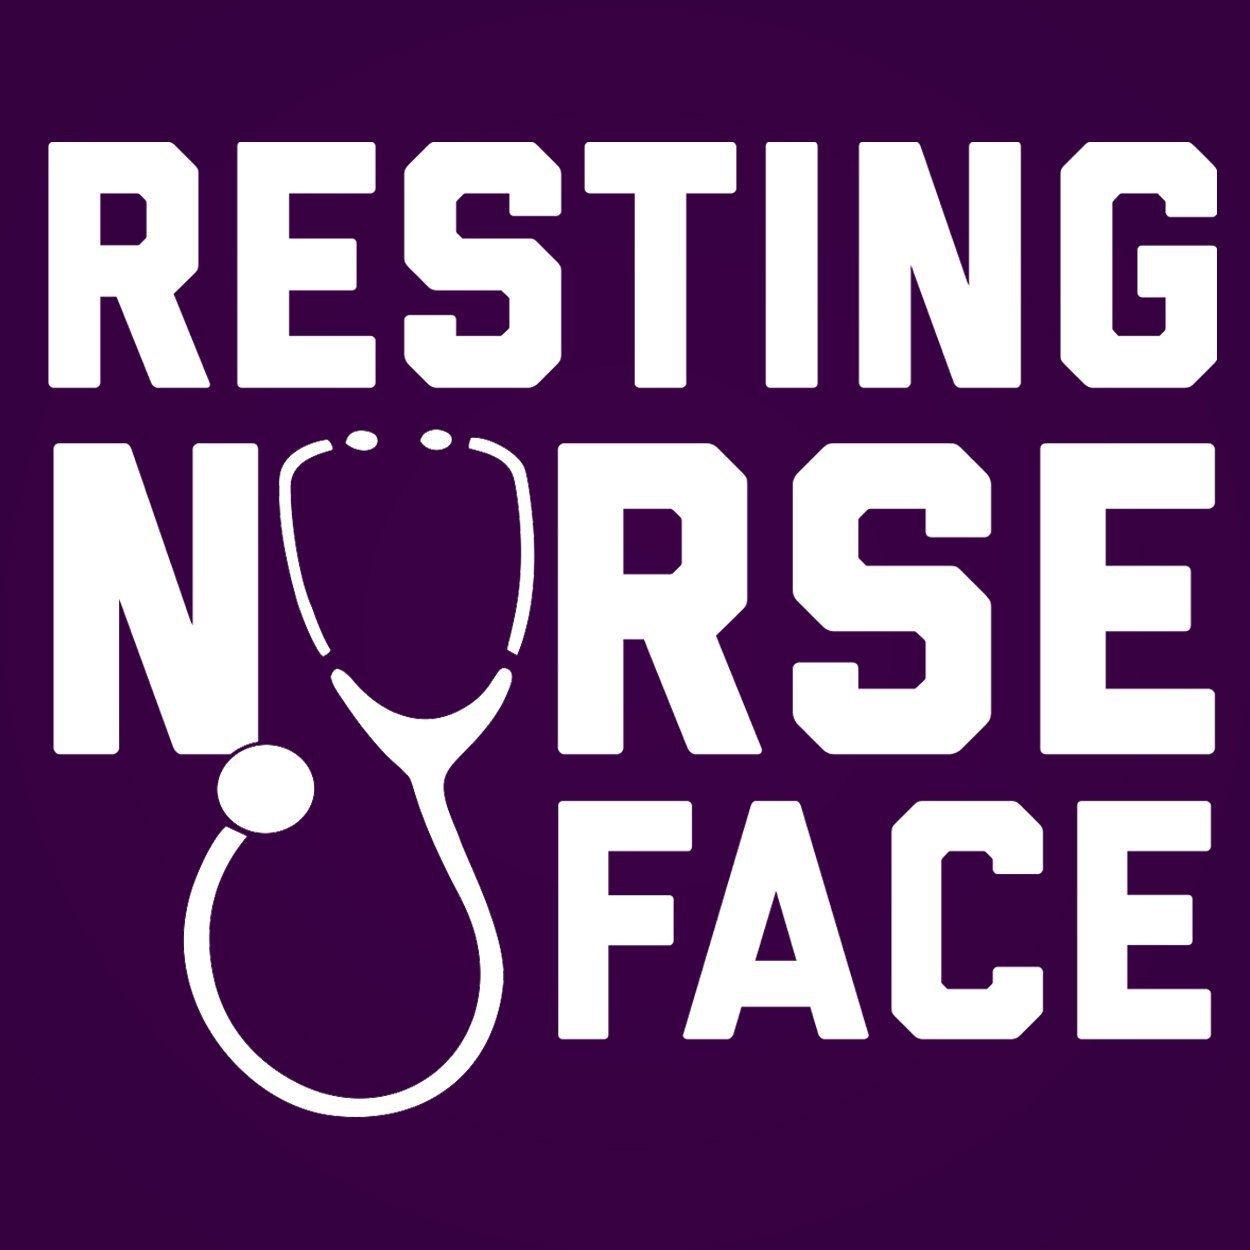 Resting Nurse Face - DonkeyTees